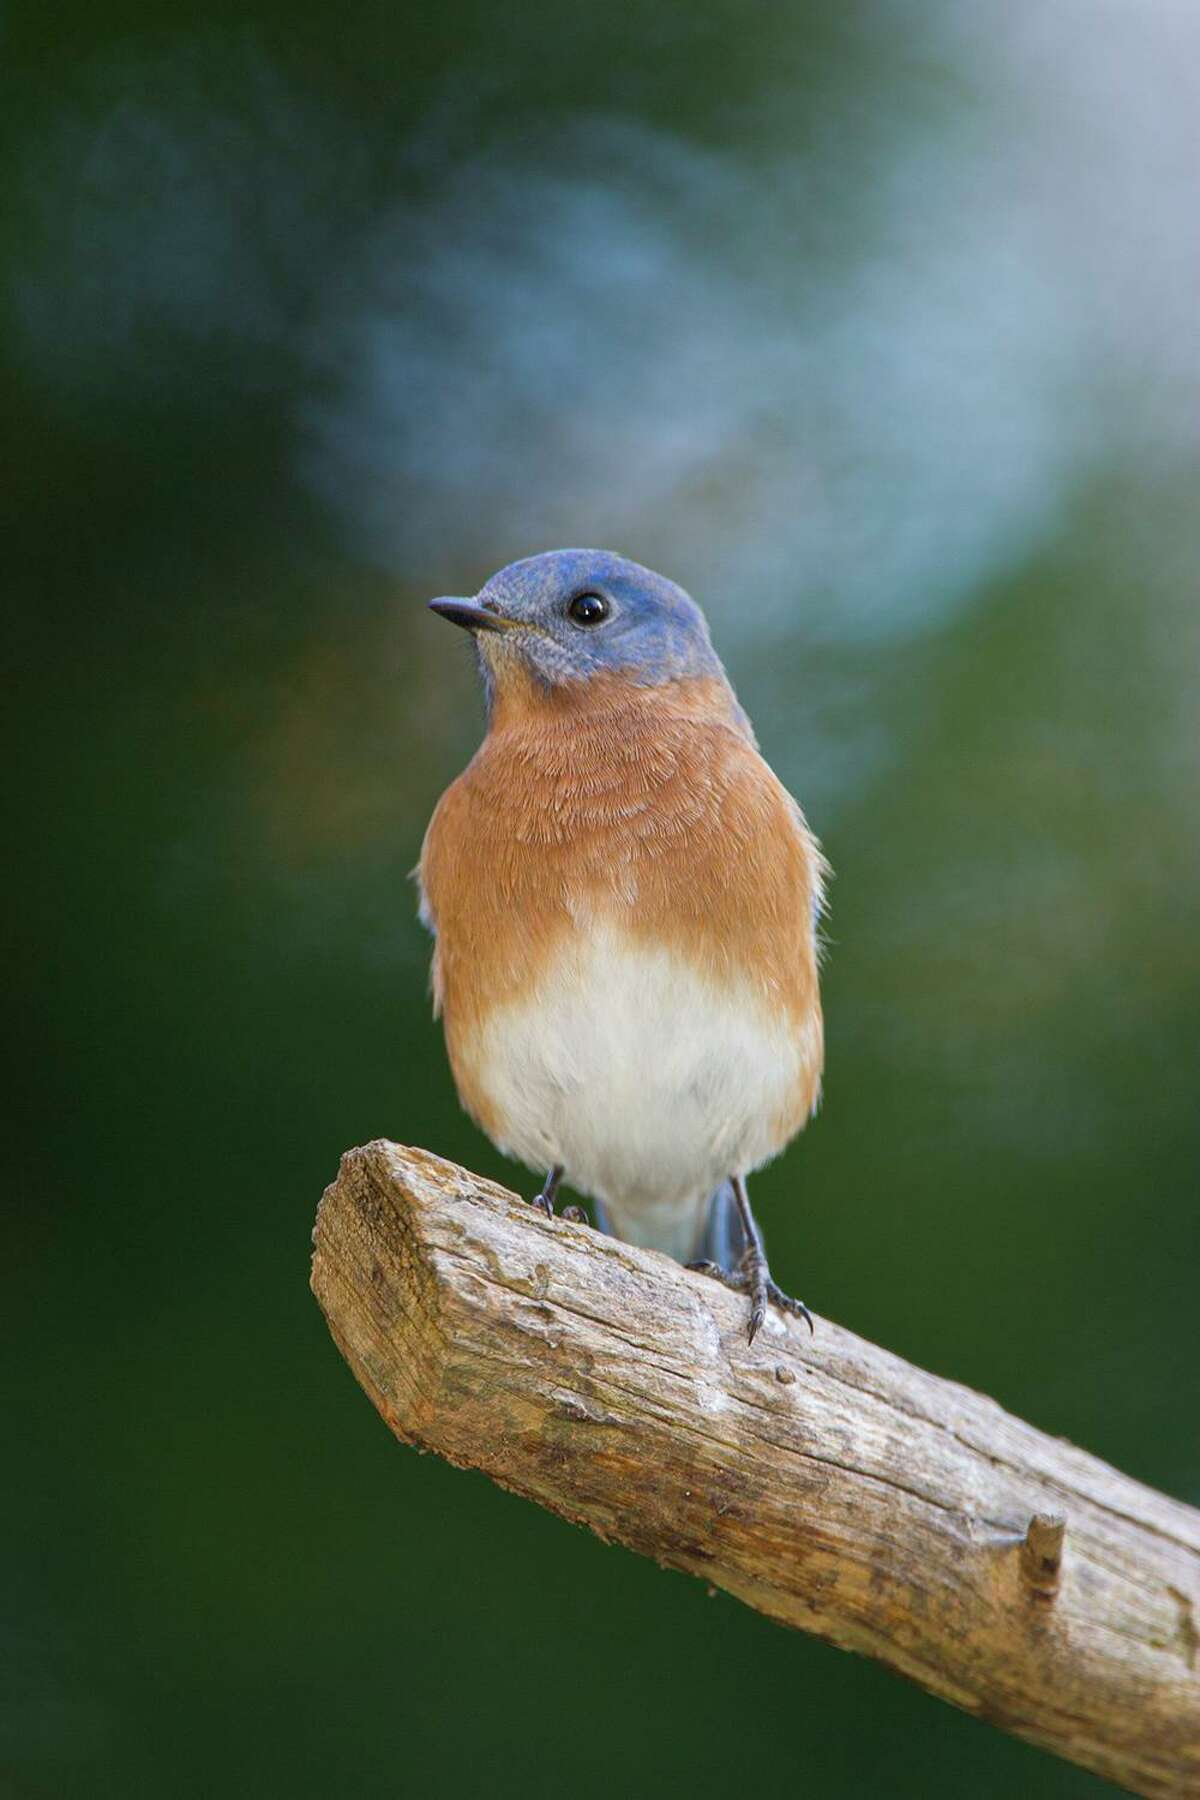 Eastern bluebirds will molt into a new set of feathers by November. Photo Credit: Kathy Adams Clark. Restricted use.